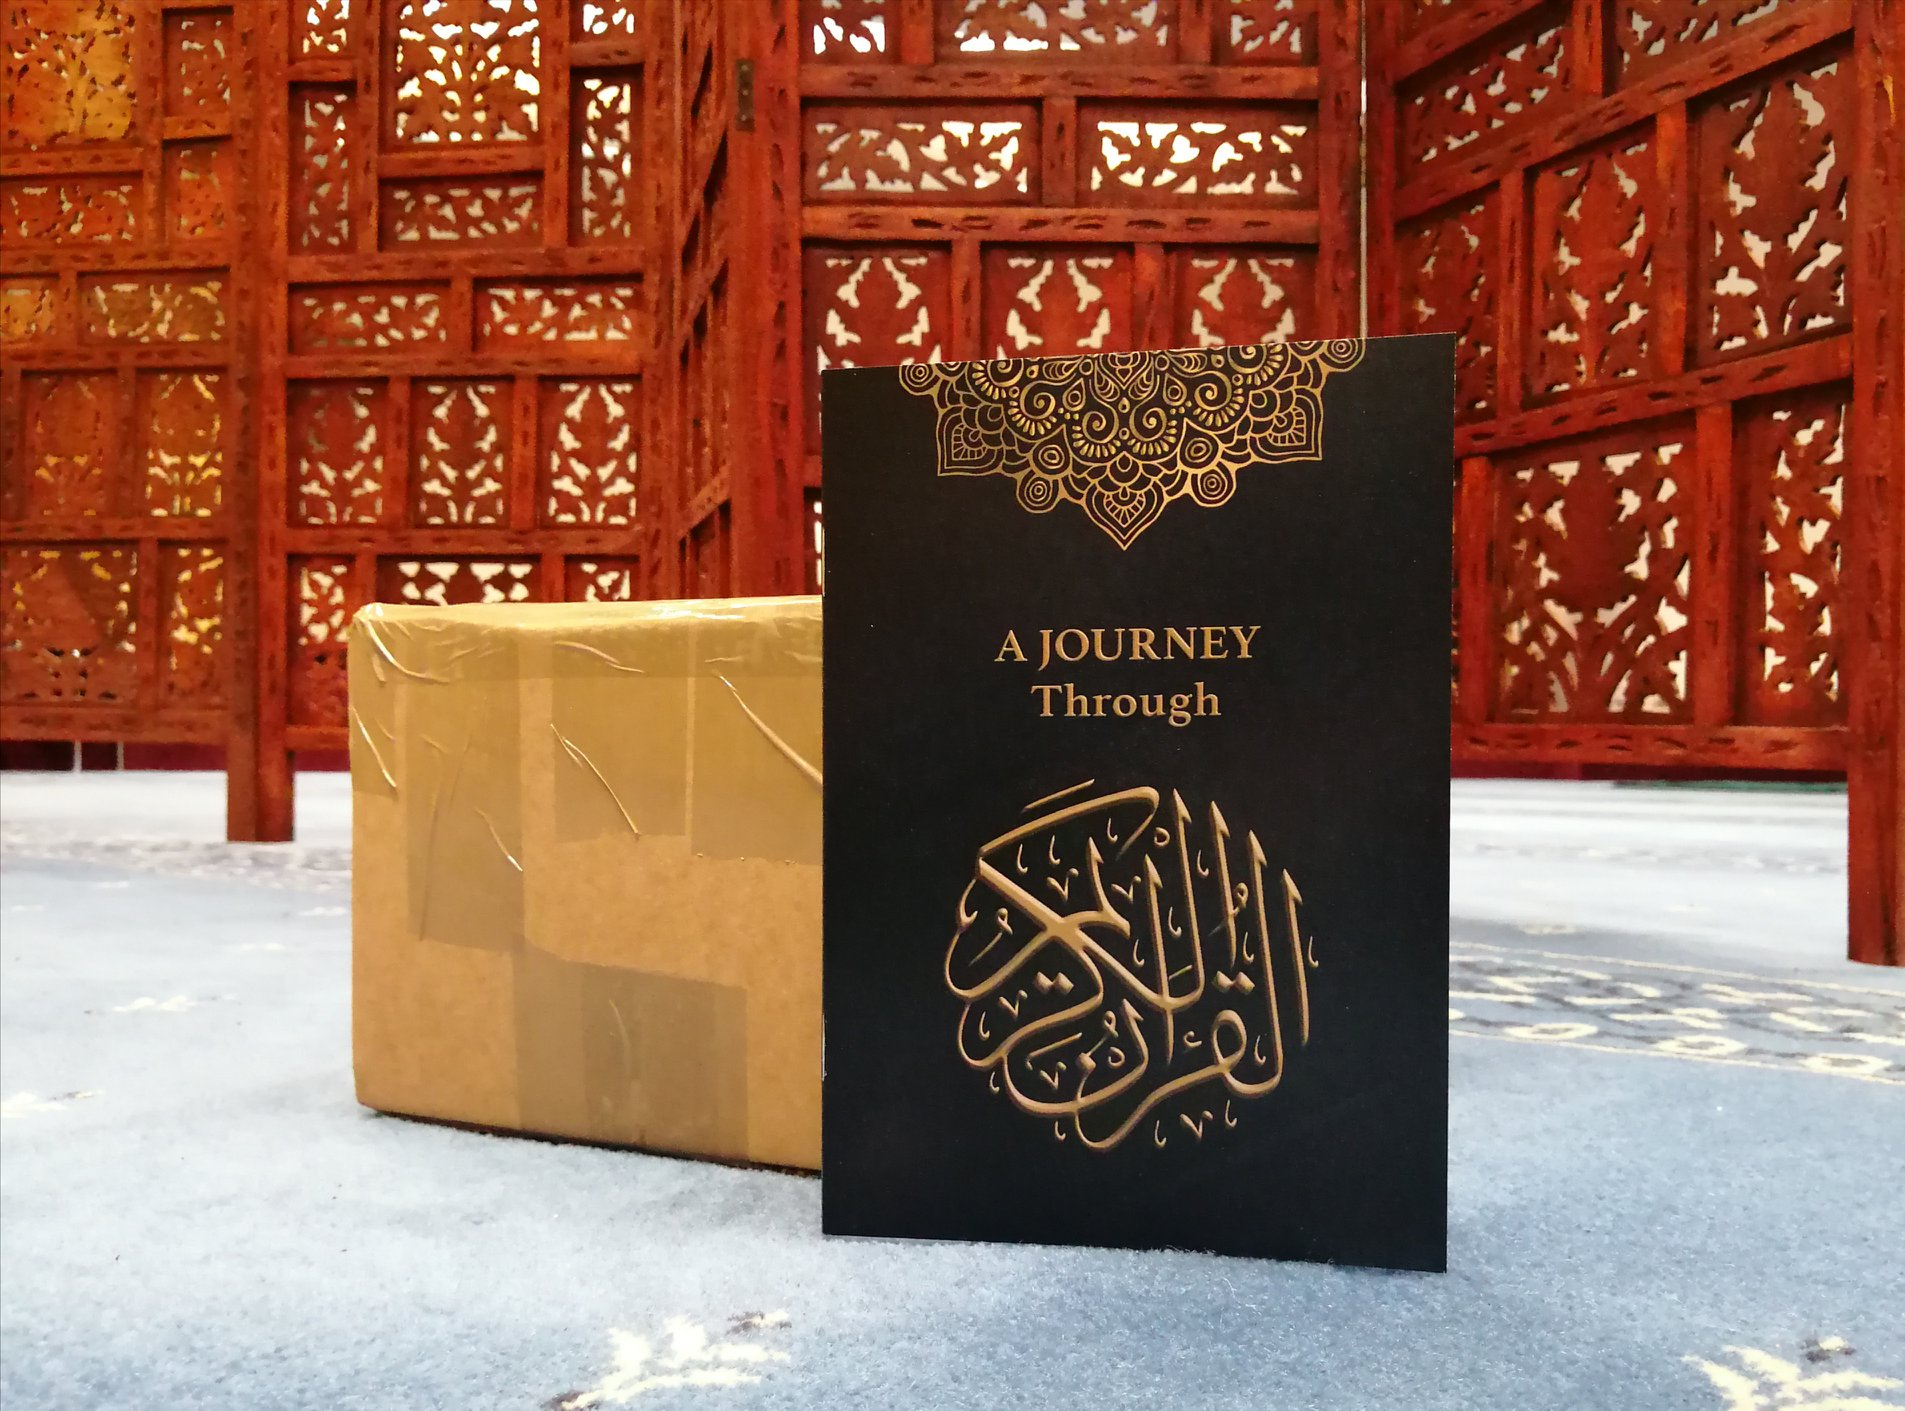 This Ramadan, we held a Tafseer series called 'A Journey through the Qur'an' with circles led by students, members of our local community and scholars. To accompany this series, the Islamic Society created this book for attendees containing the excerpts we studied through the series.